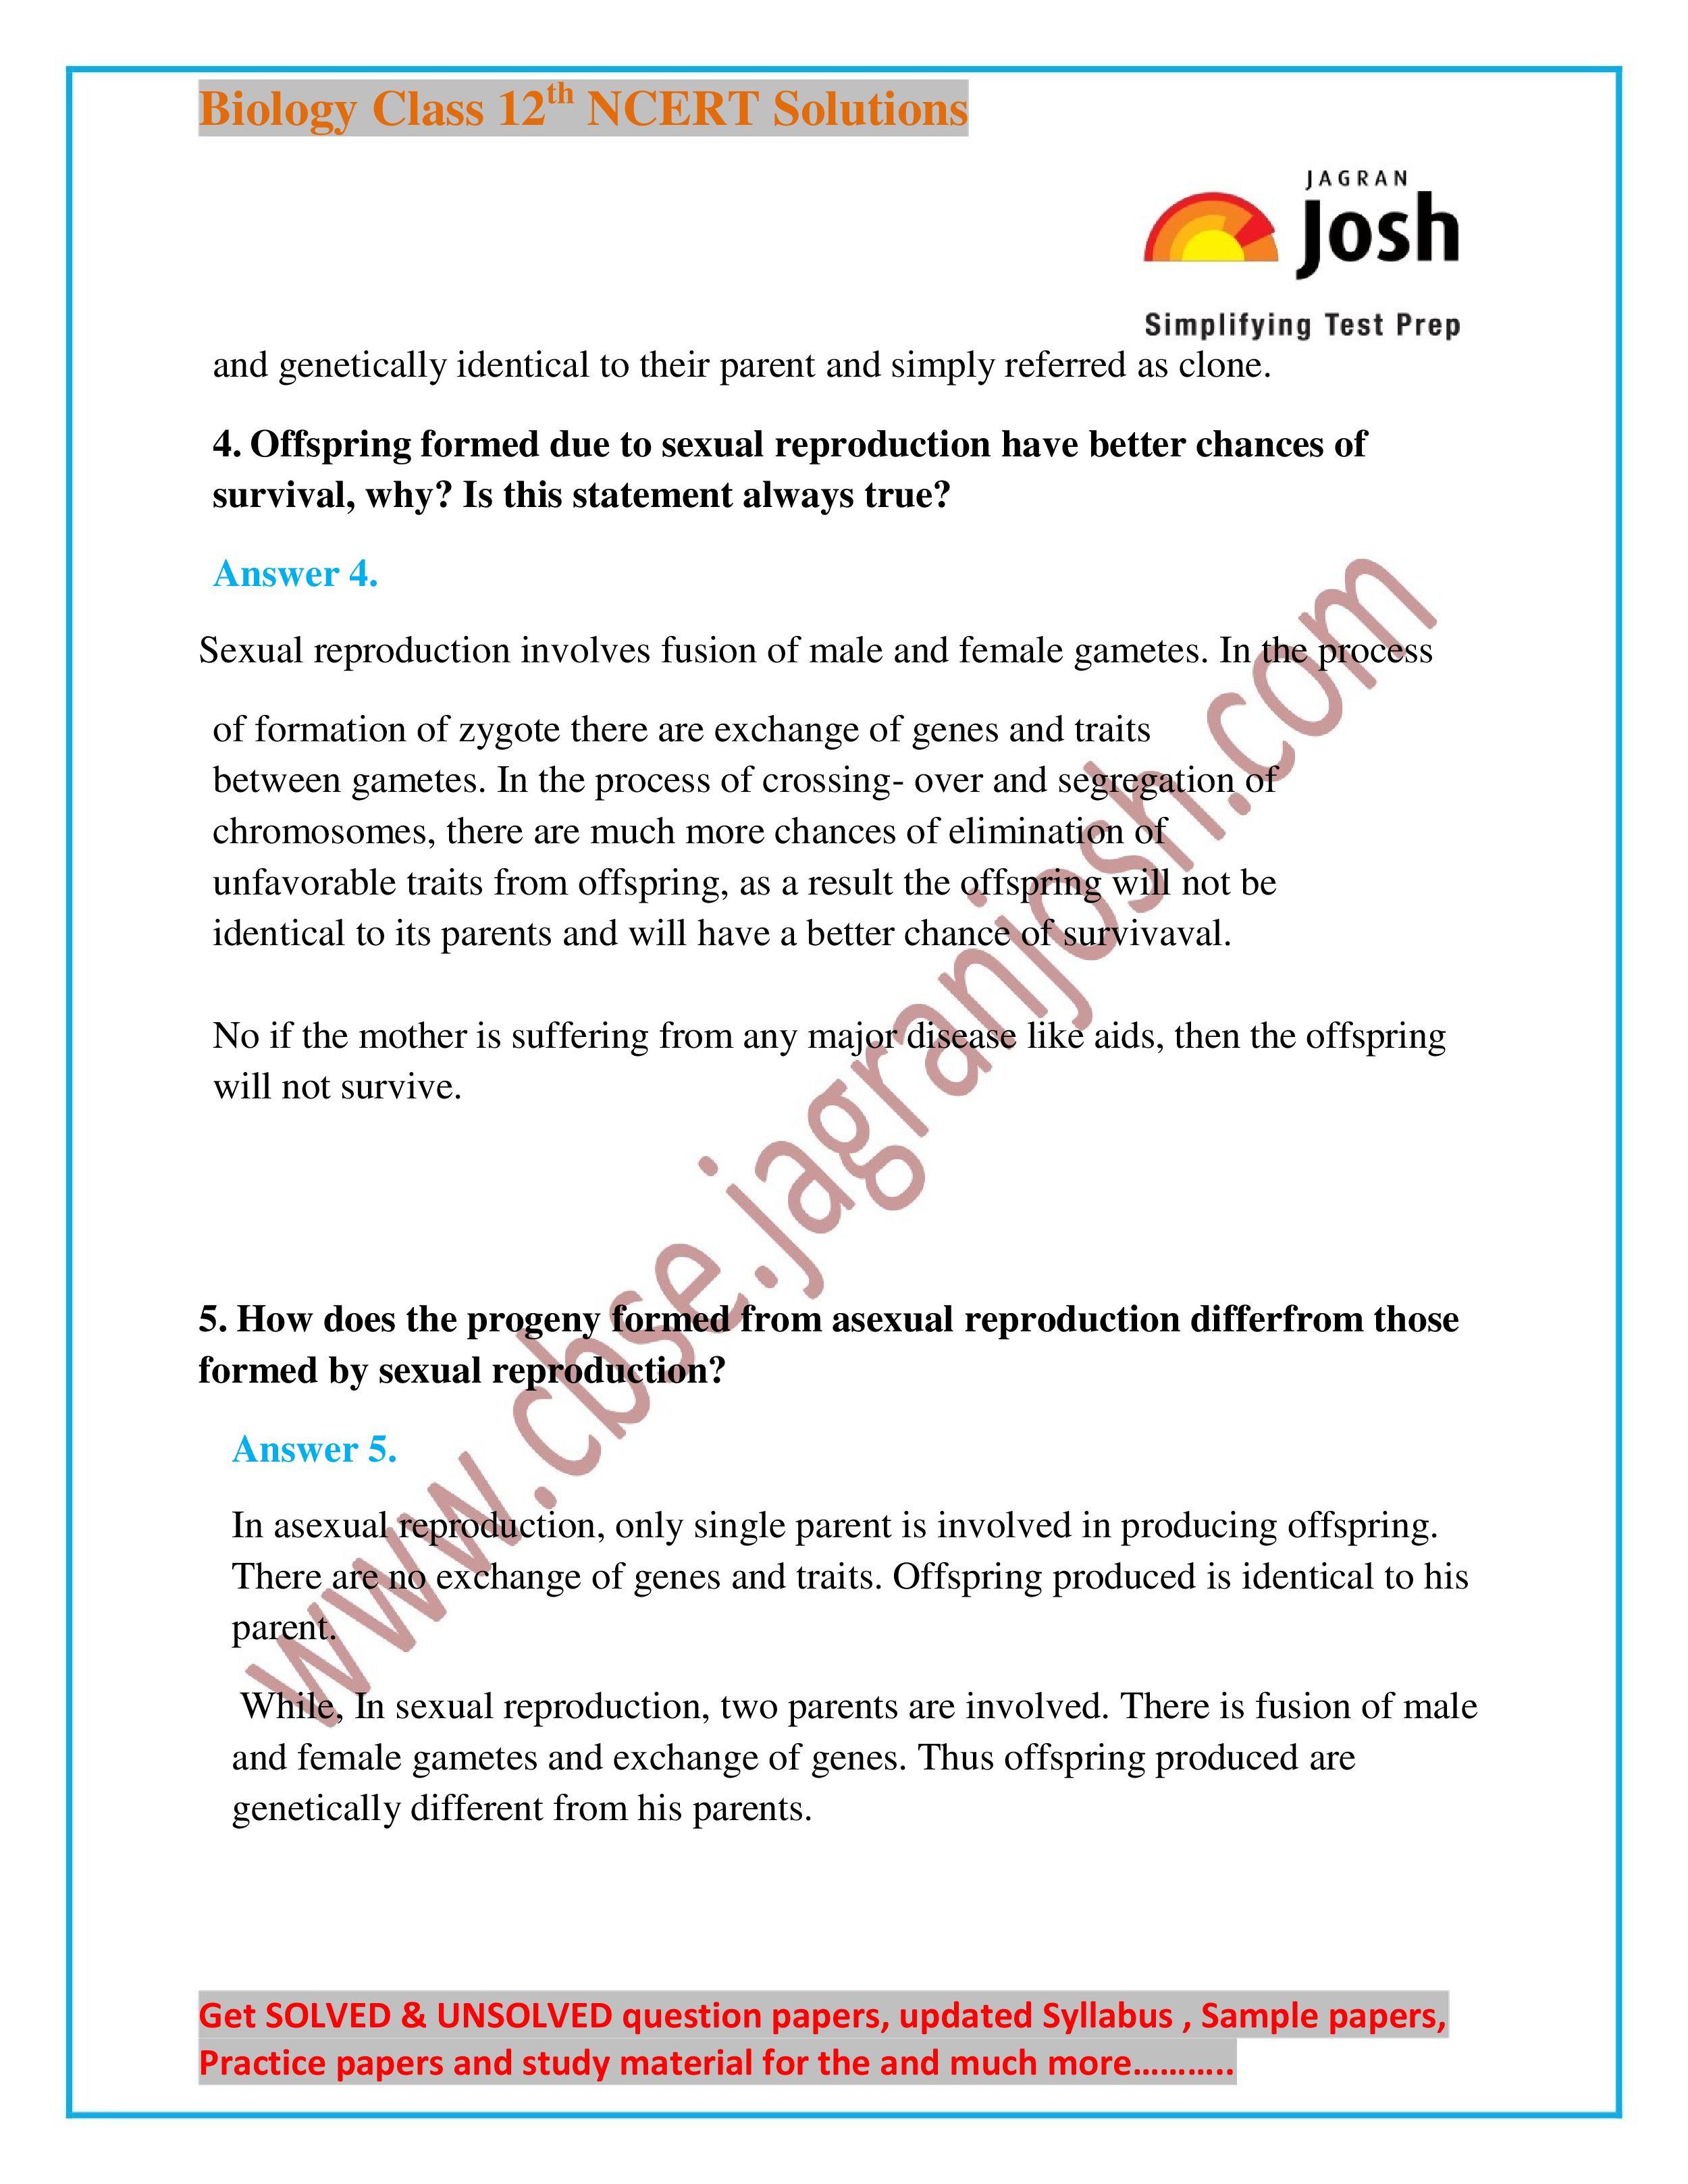 Ncert xii biology chapterwise solutions ebook class 12th physics cbse e books pdf free download array ncert biology solution for class xii by jagran josh pdf download rh kopykitab com fandeluxe Choice Image